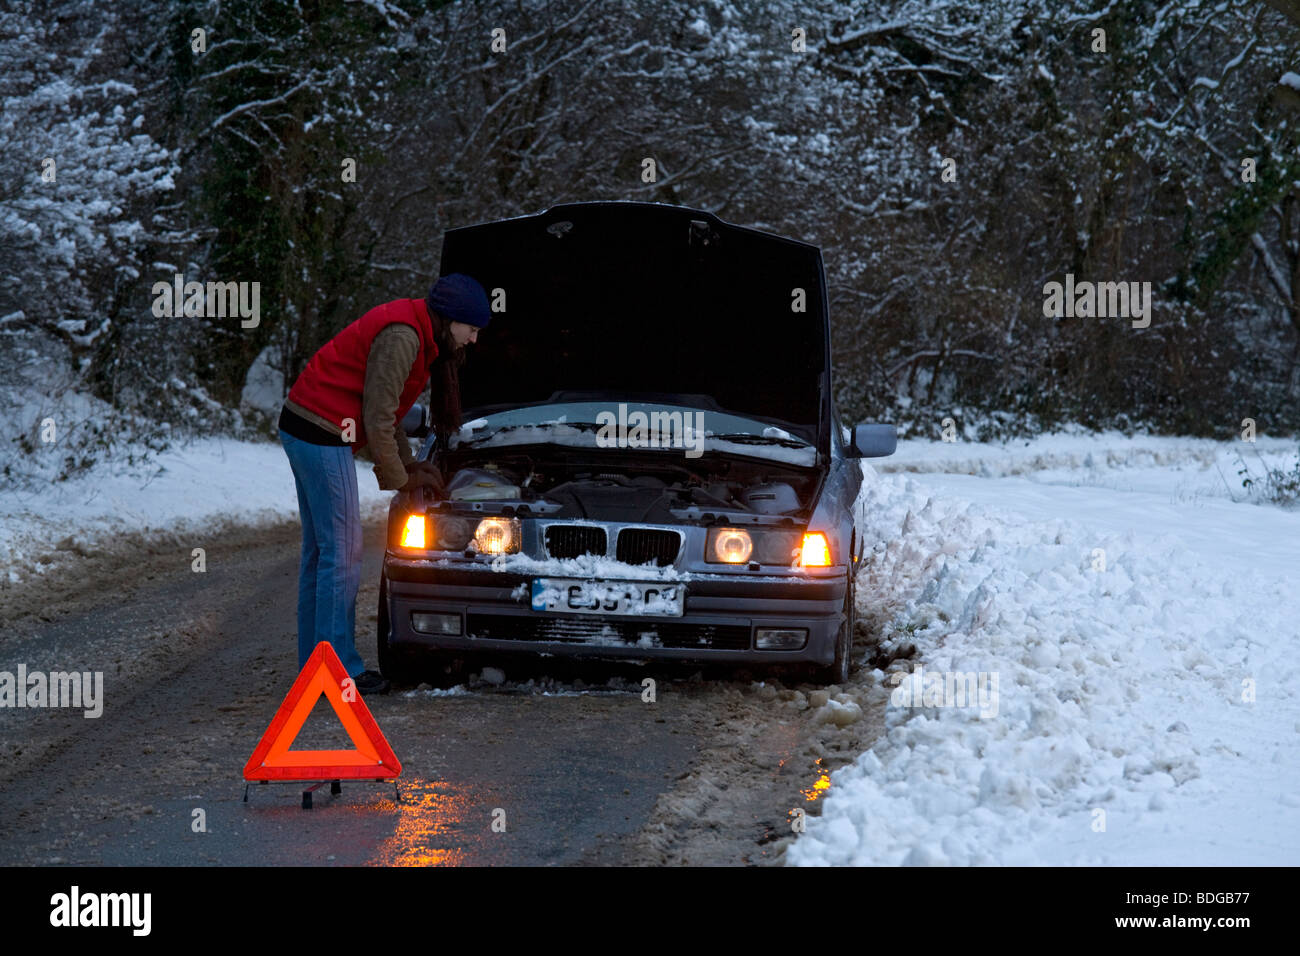 Women on her own broken down in the snow, stranded trying to get it fixed. - Stock Image